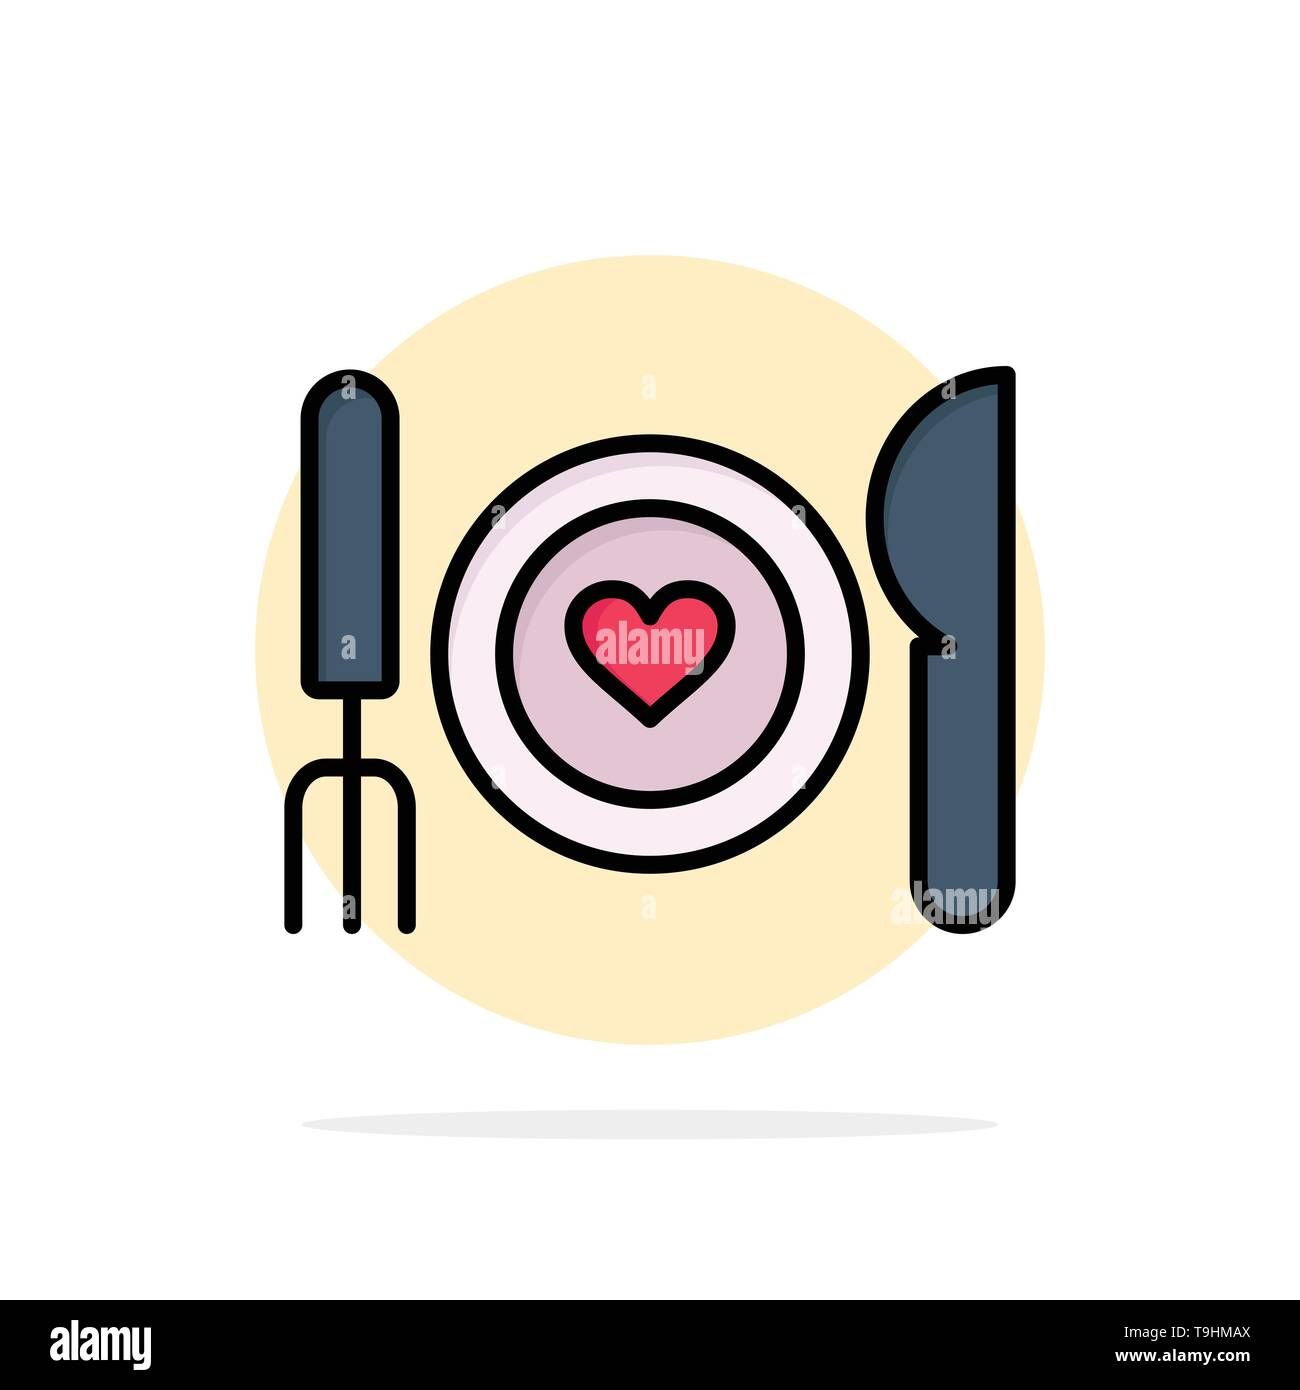 Dinner, Romantic, Food, Date, Couple Abstract Circle Background Flat color Icon - Stock Image